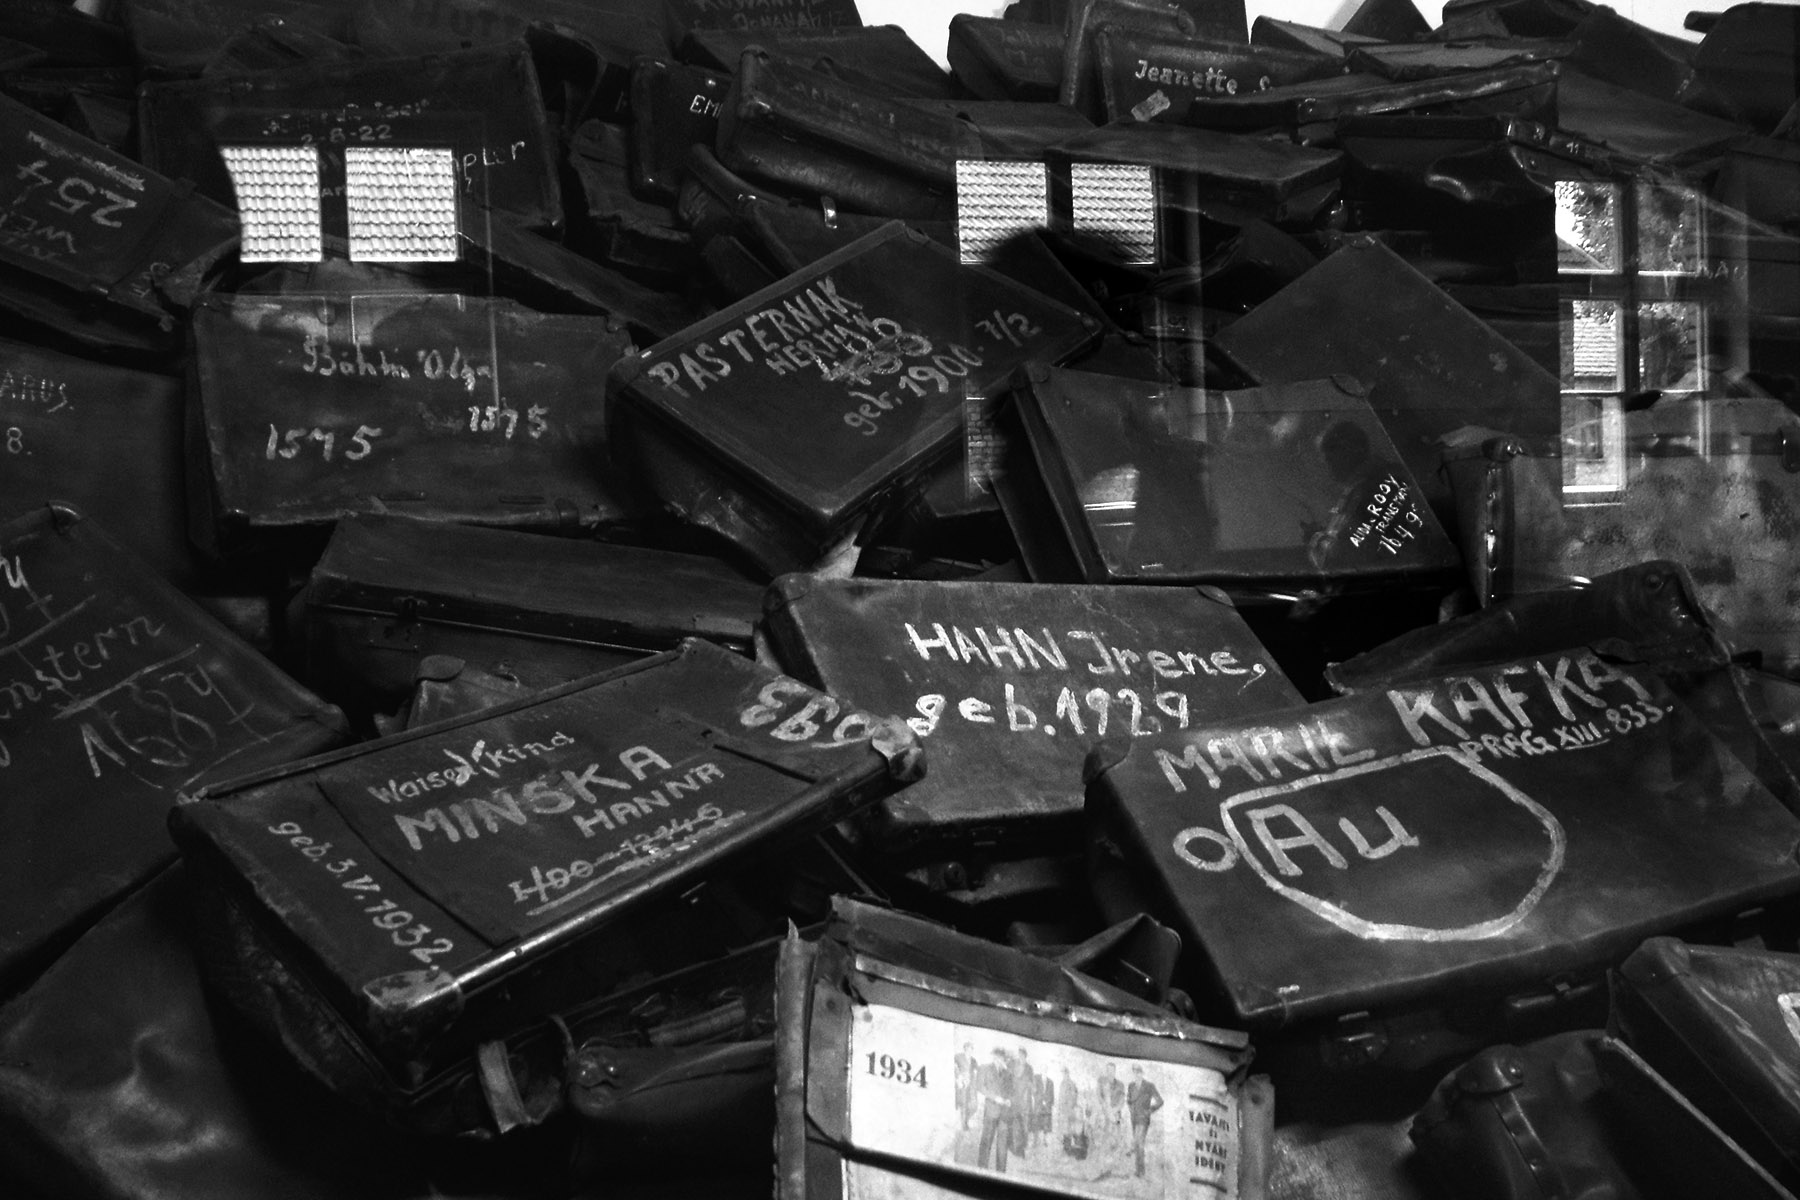 Auschwitz 1 – collection of suitcases